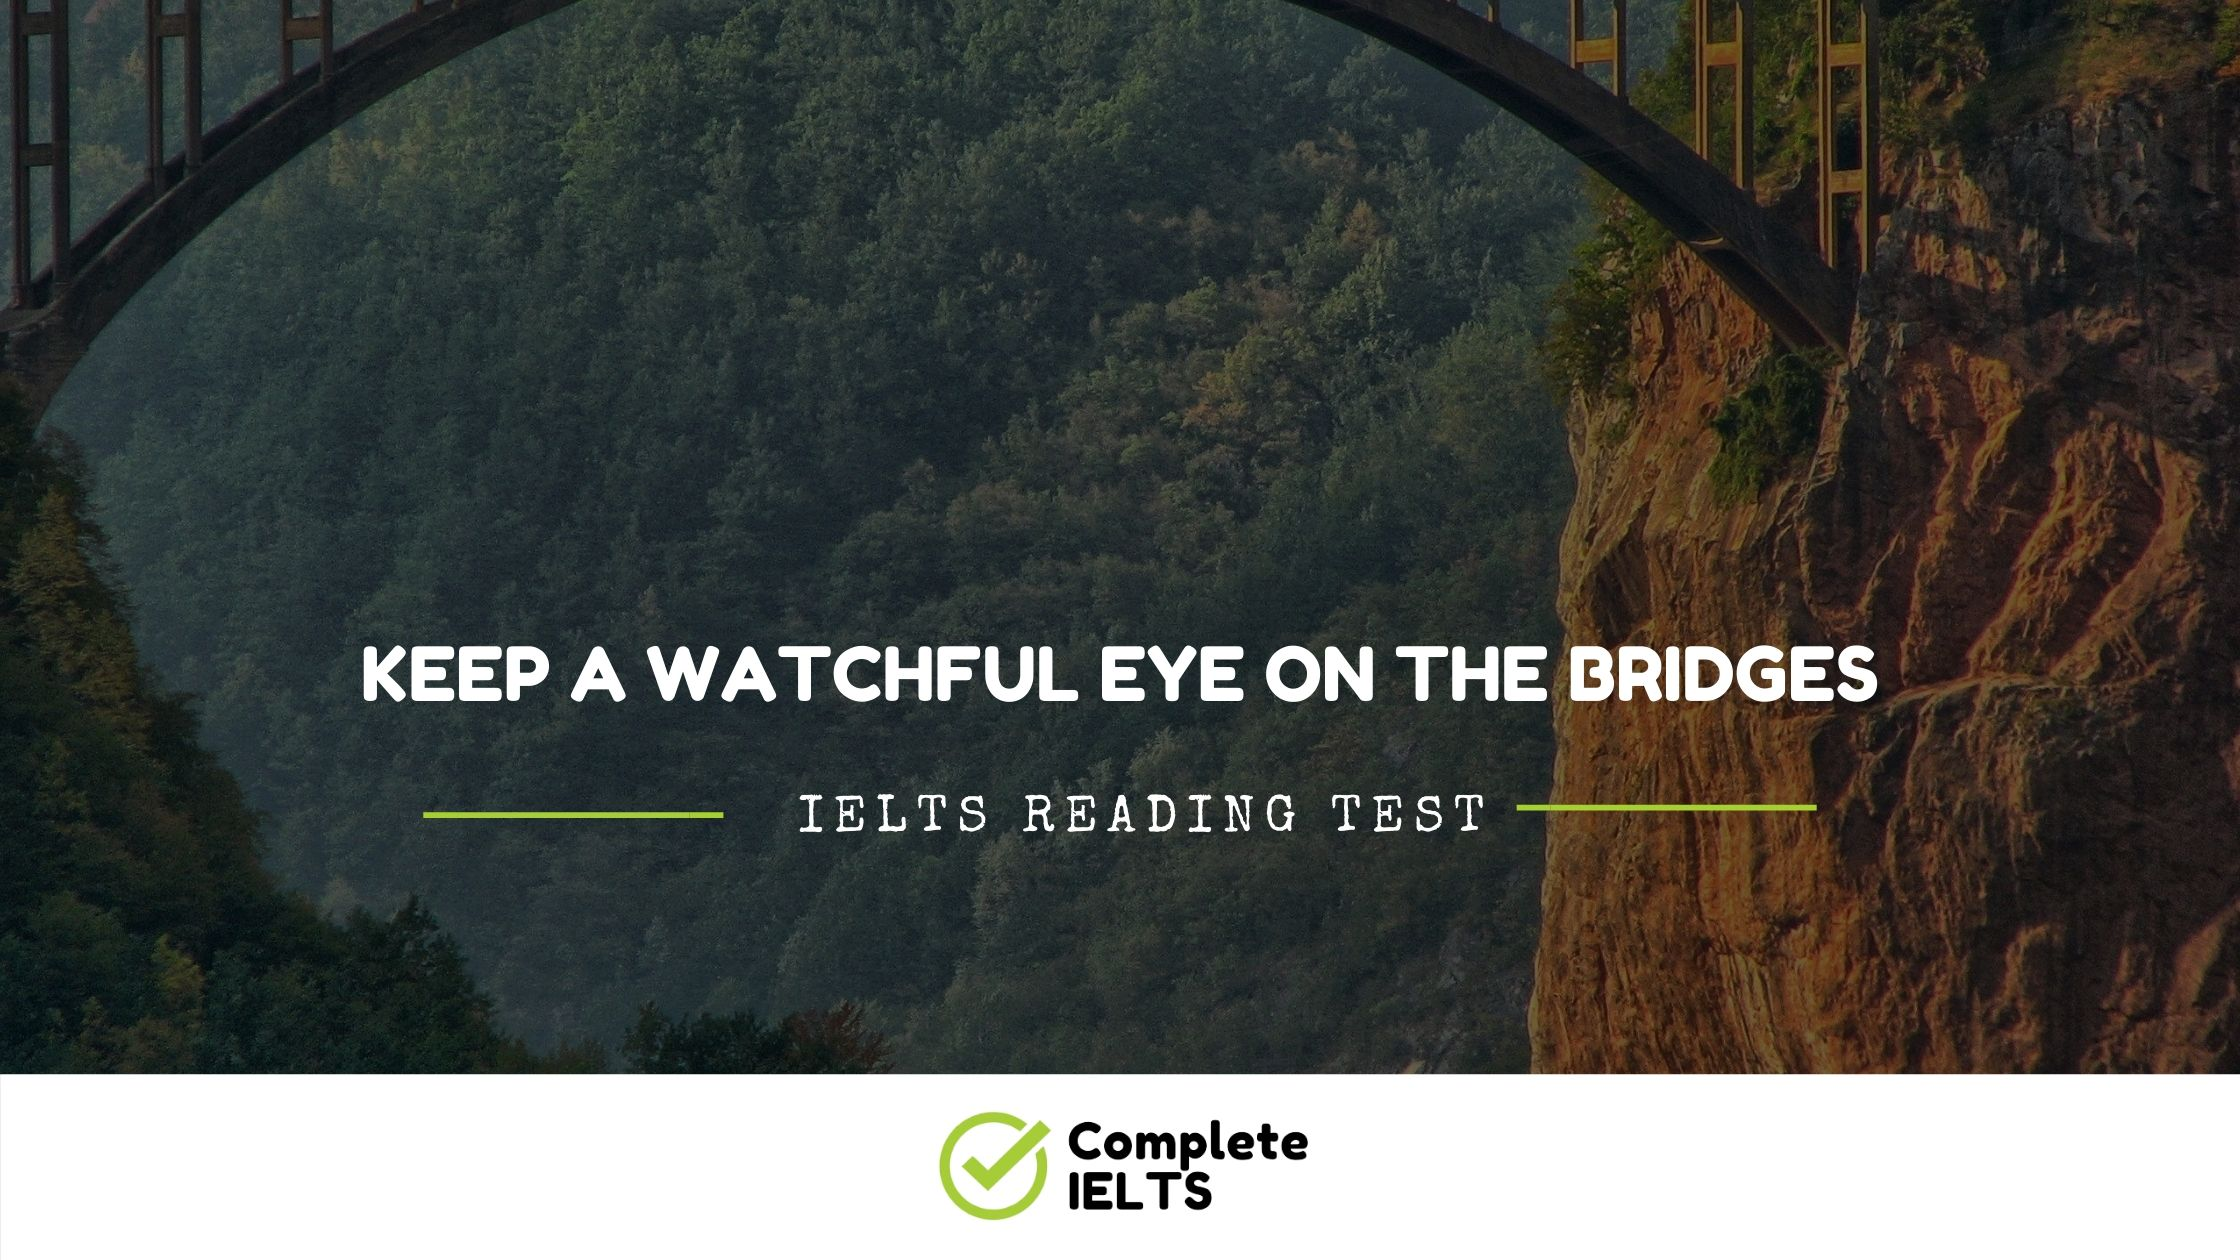 Keep a Watchful Eye on the Bridges